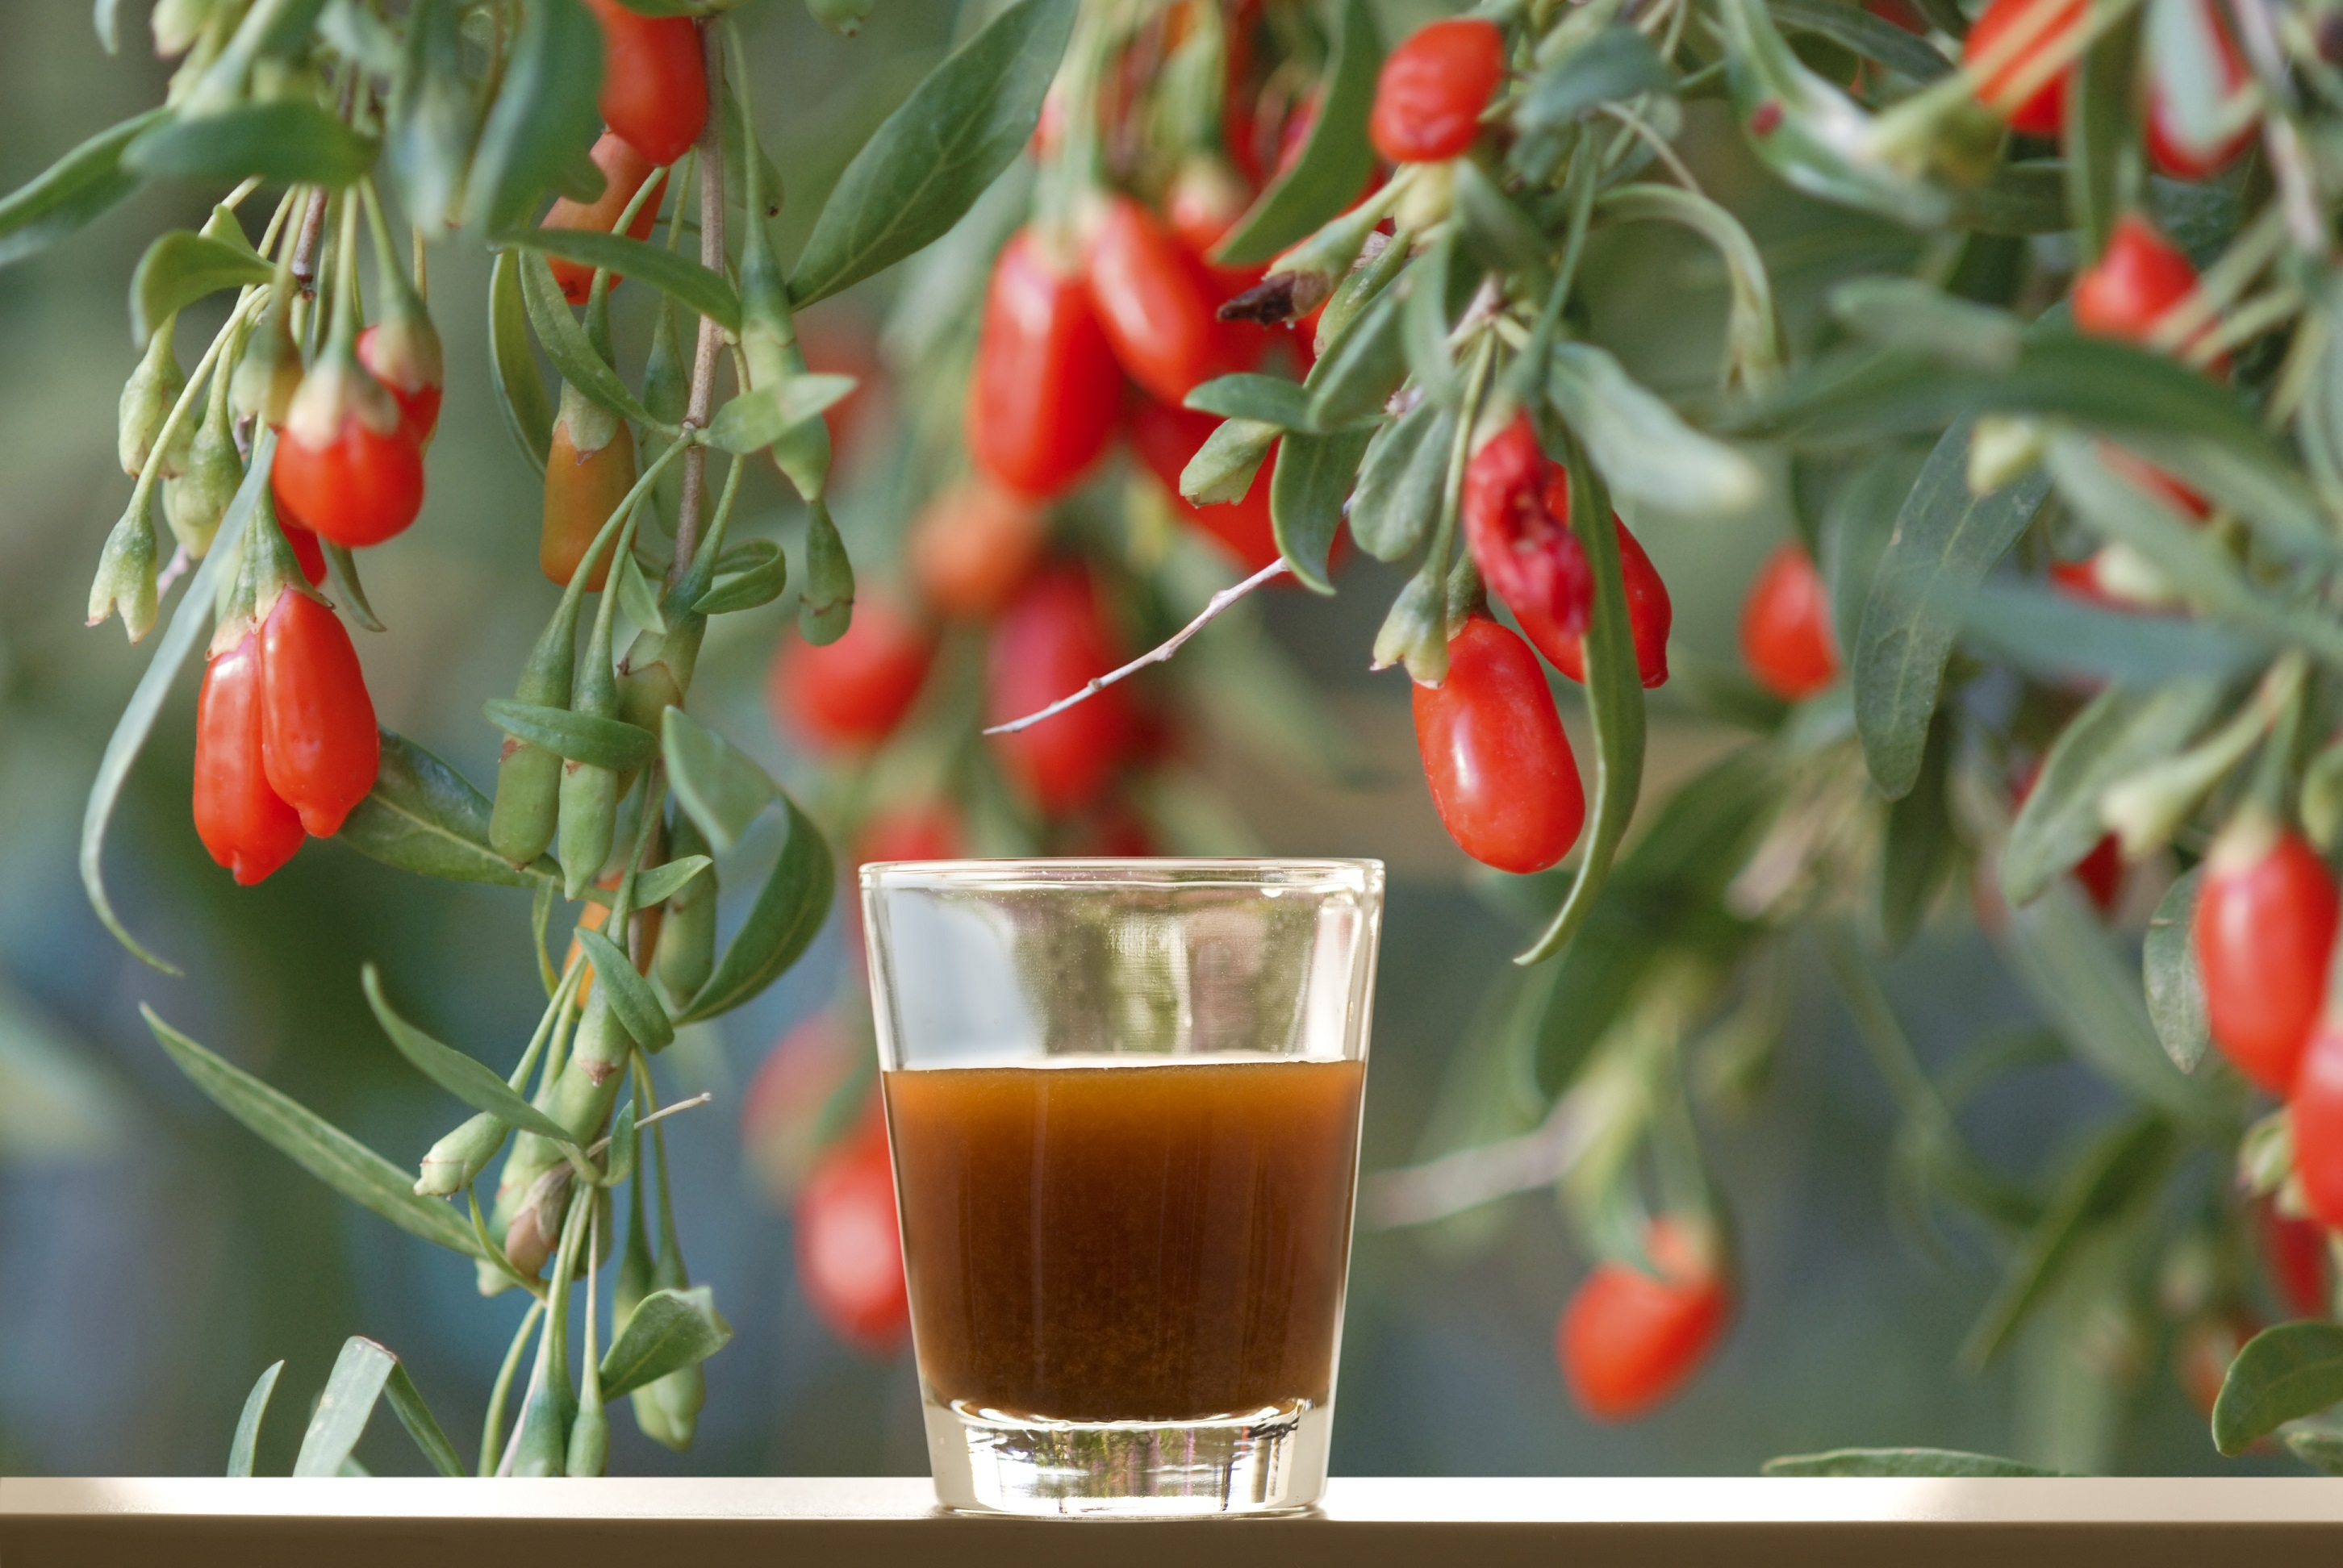 Ningxia red – The super Power Ninja Juice